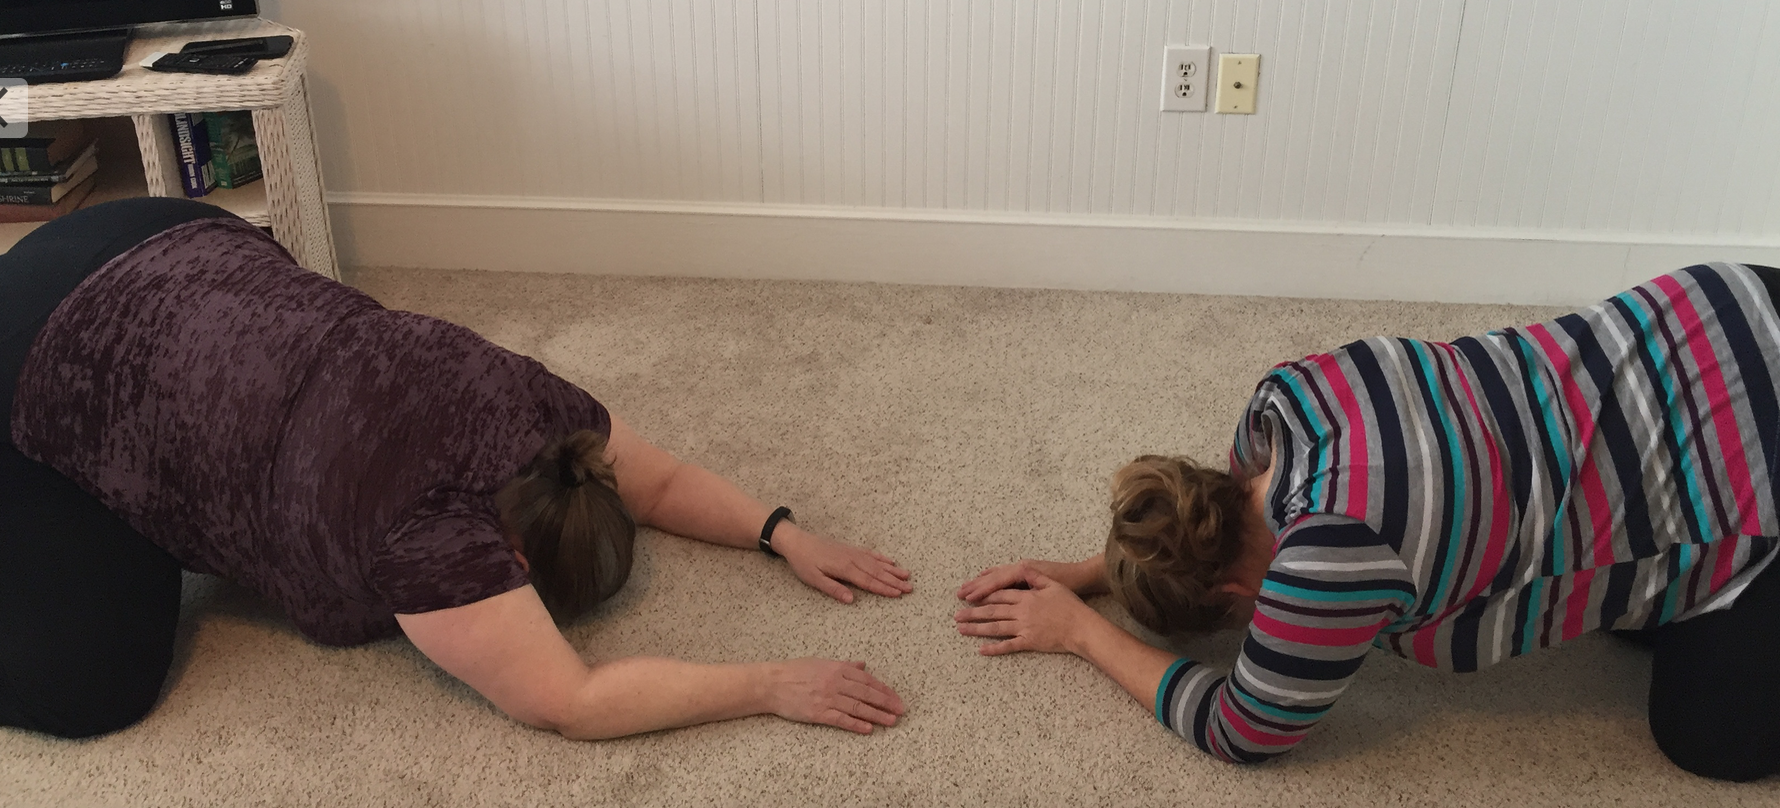 Me and my sister in child's pose, arms in front in variations.